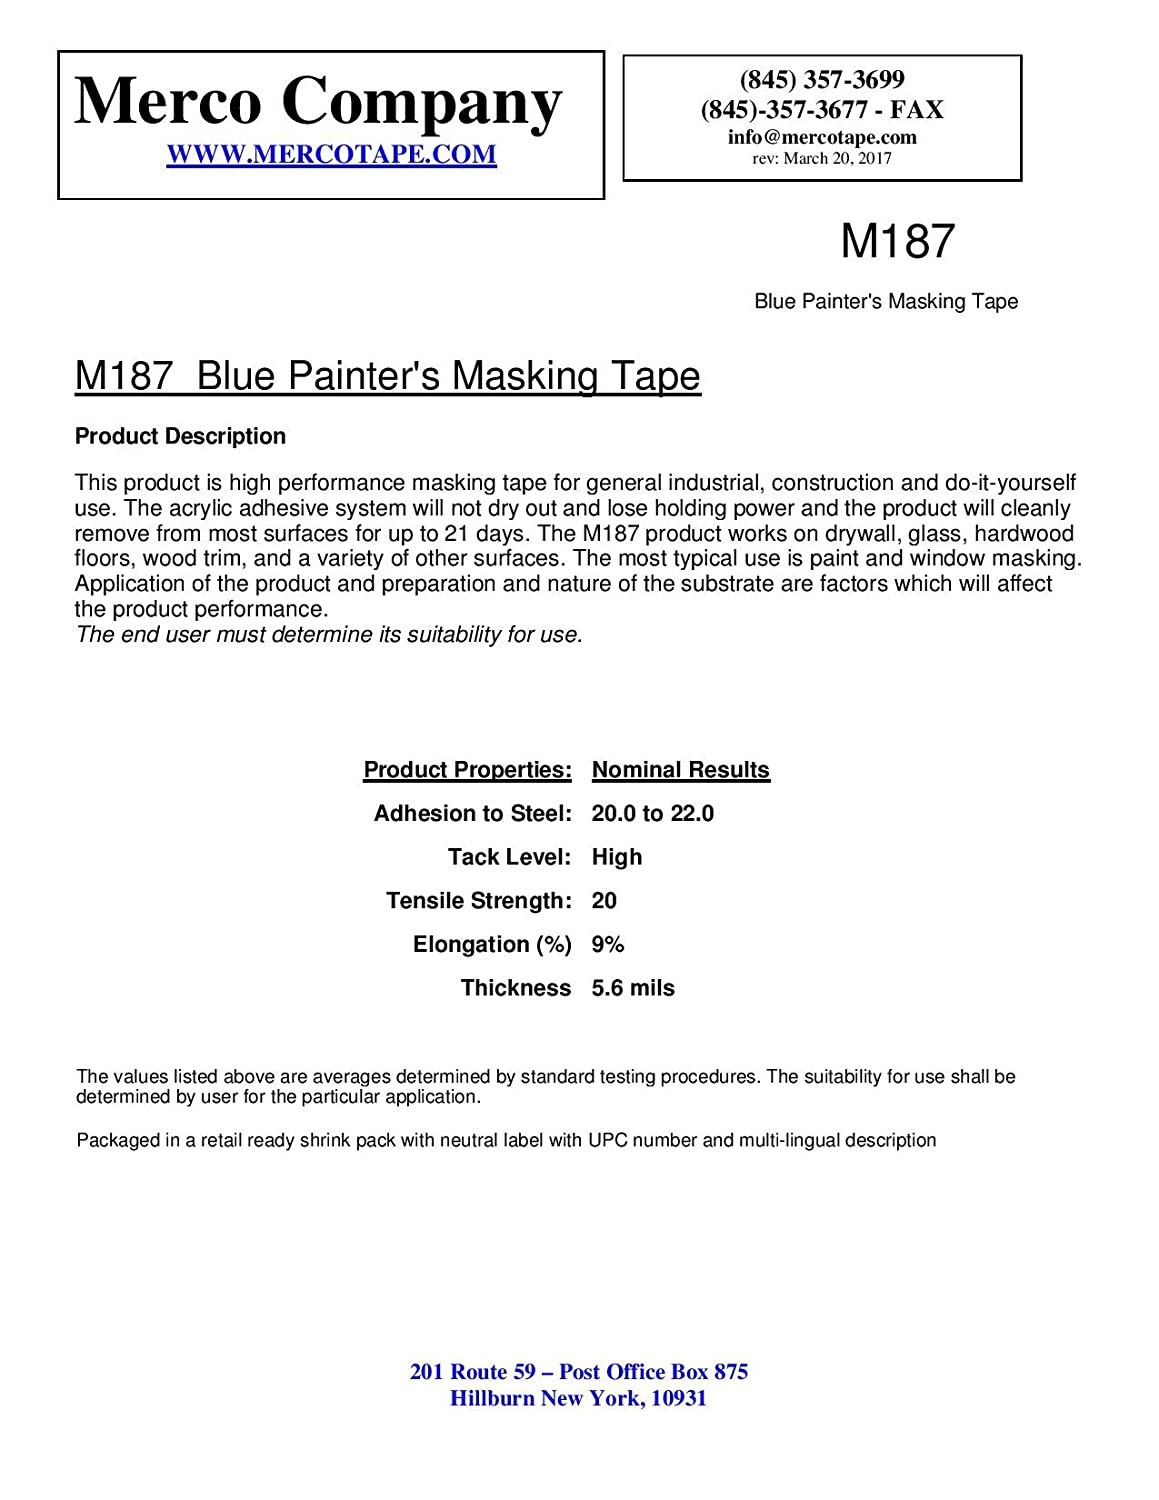 Merco M187 Blue Painters Masking Tape Full Case 36mm Wiring Diagrams X 55m 21 Day Clean Release 24 Rolls Home Improvement